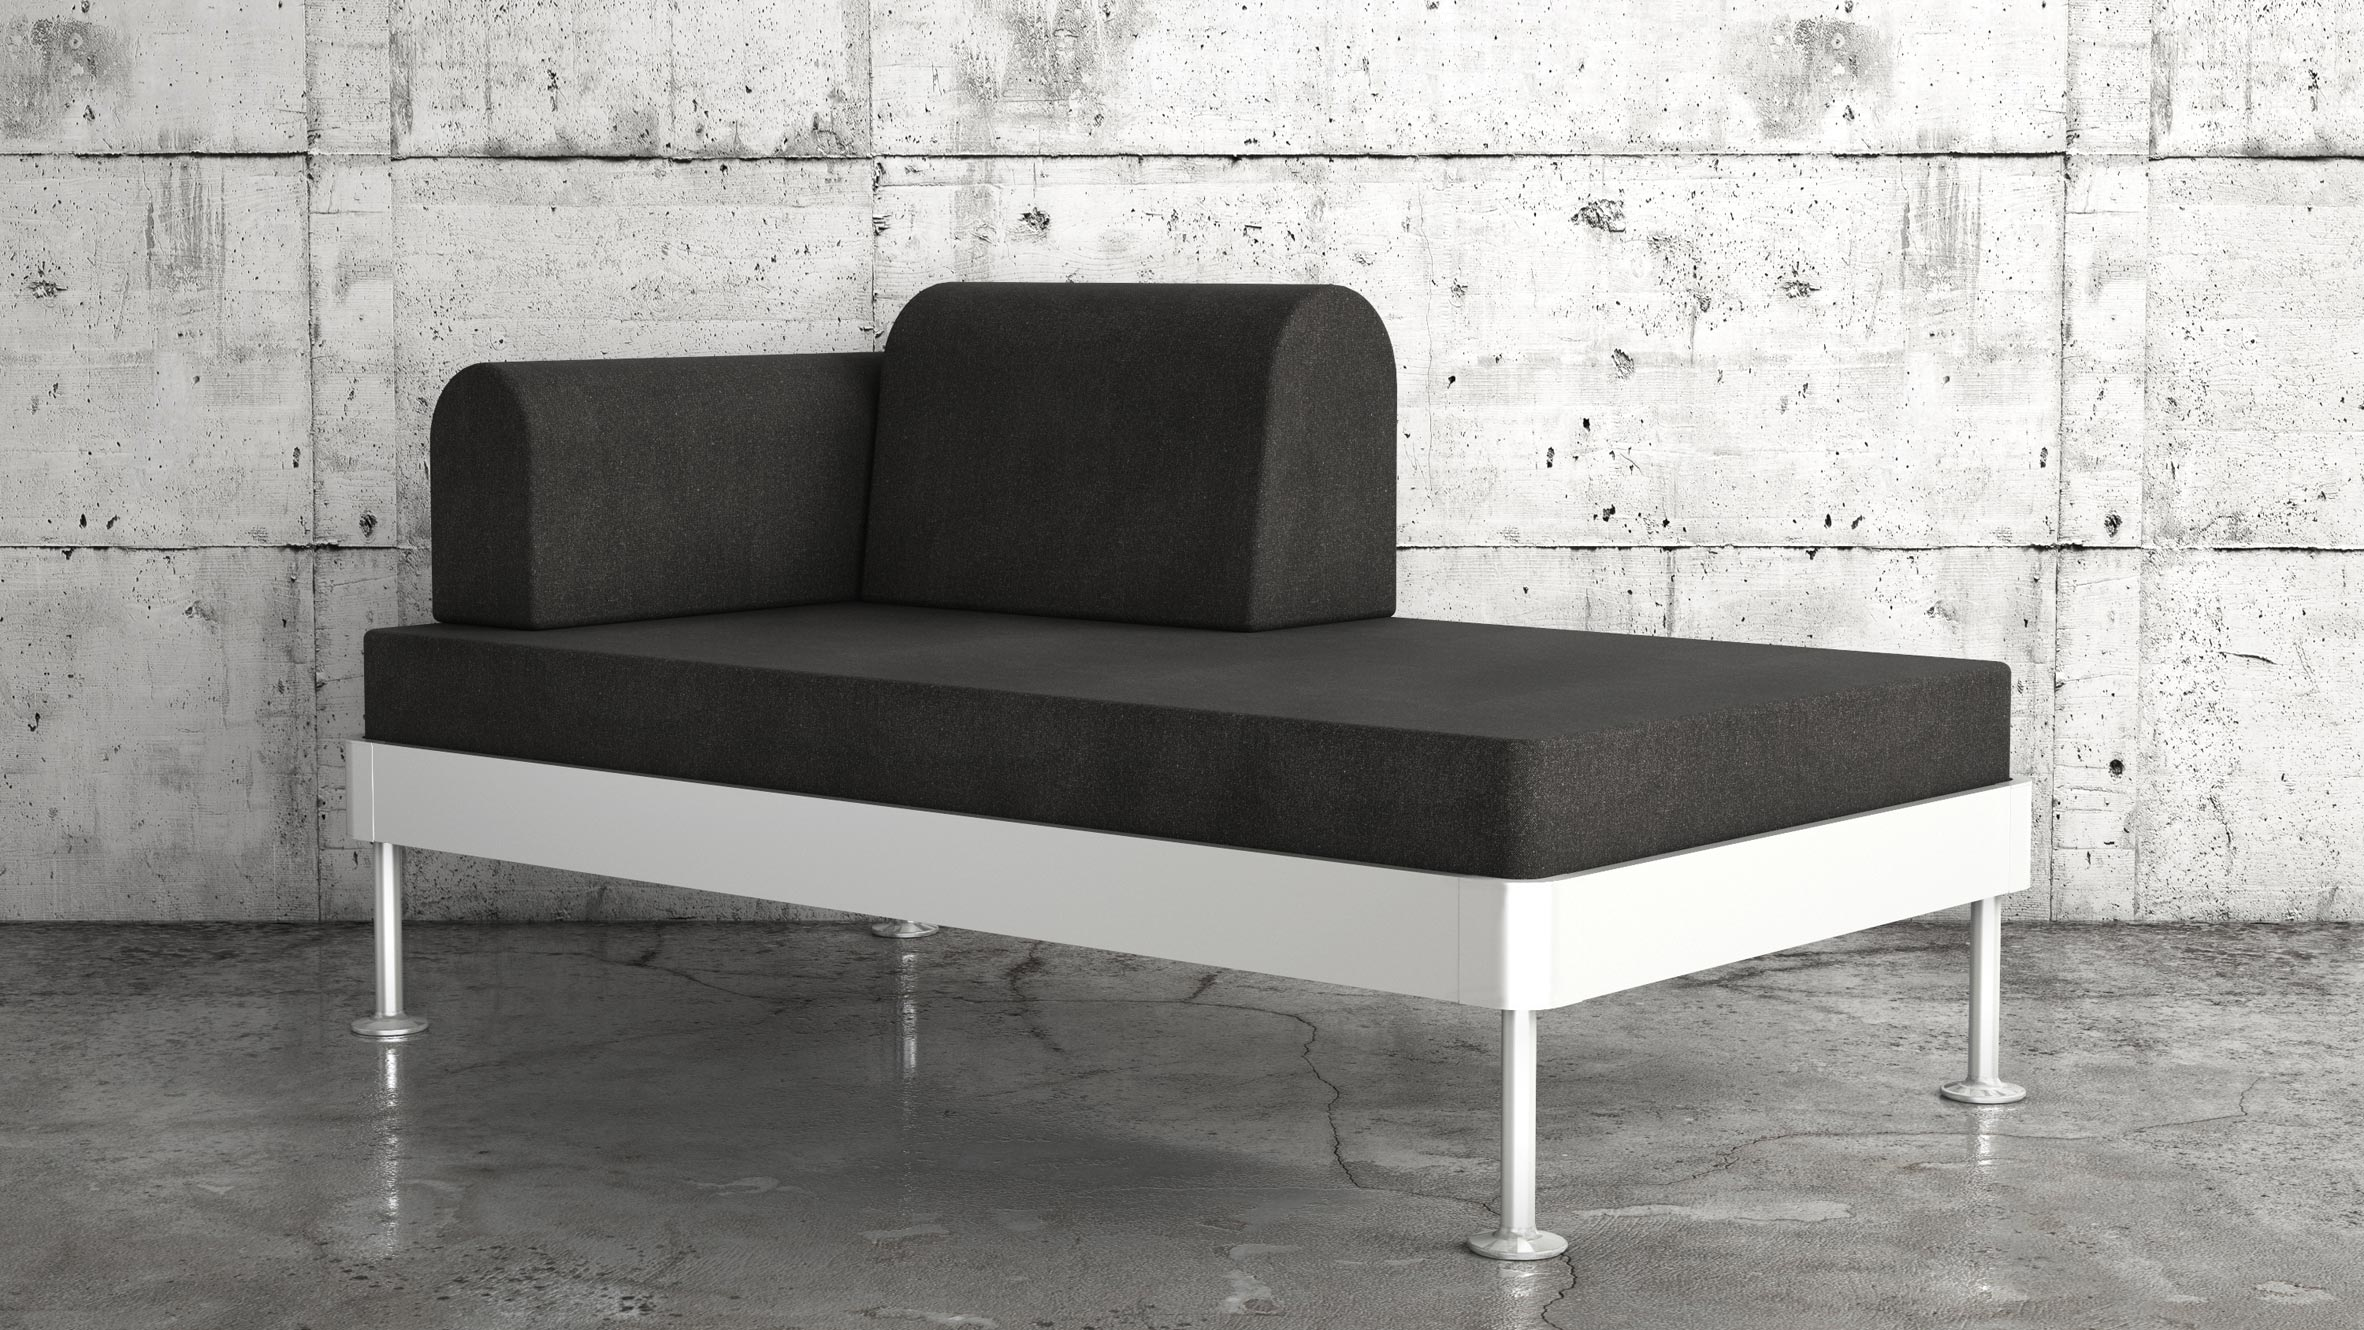 Ikea Sofa Bed Ikea S Hackable Sofa Bed Will Debut At Milan Design Week Curbed